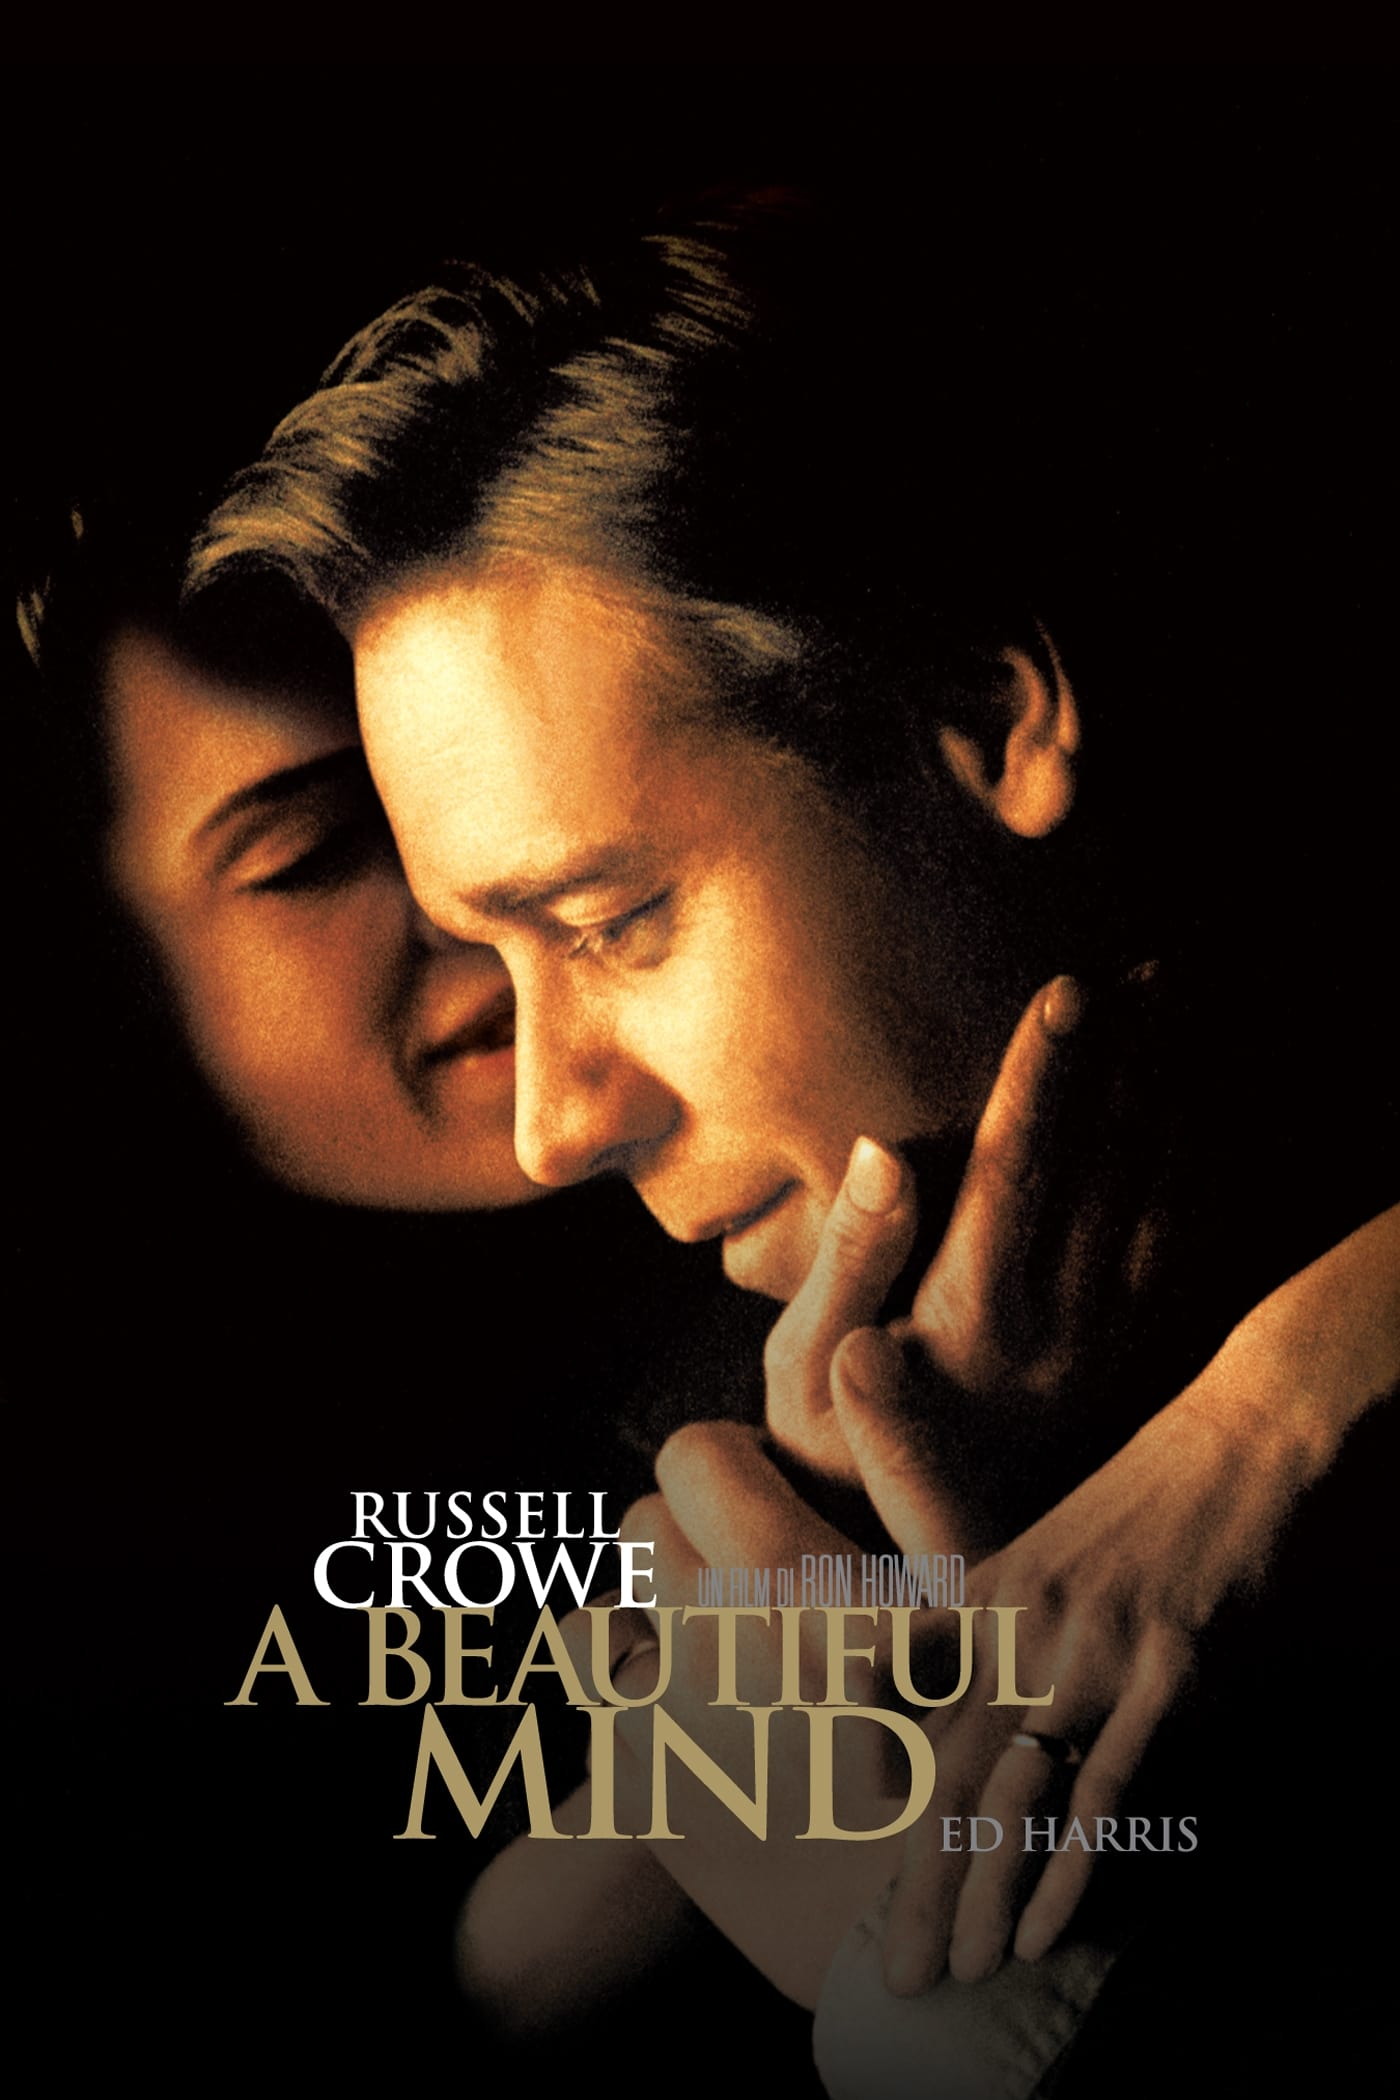 Quotes from the Movie A Beautiful Mind